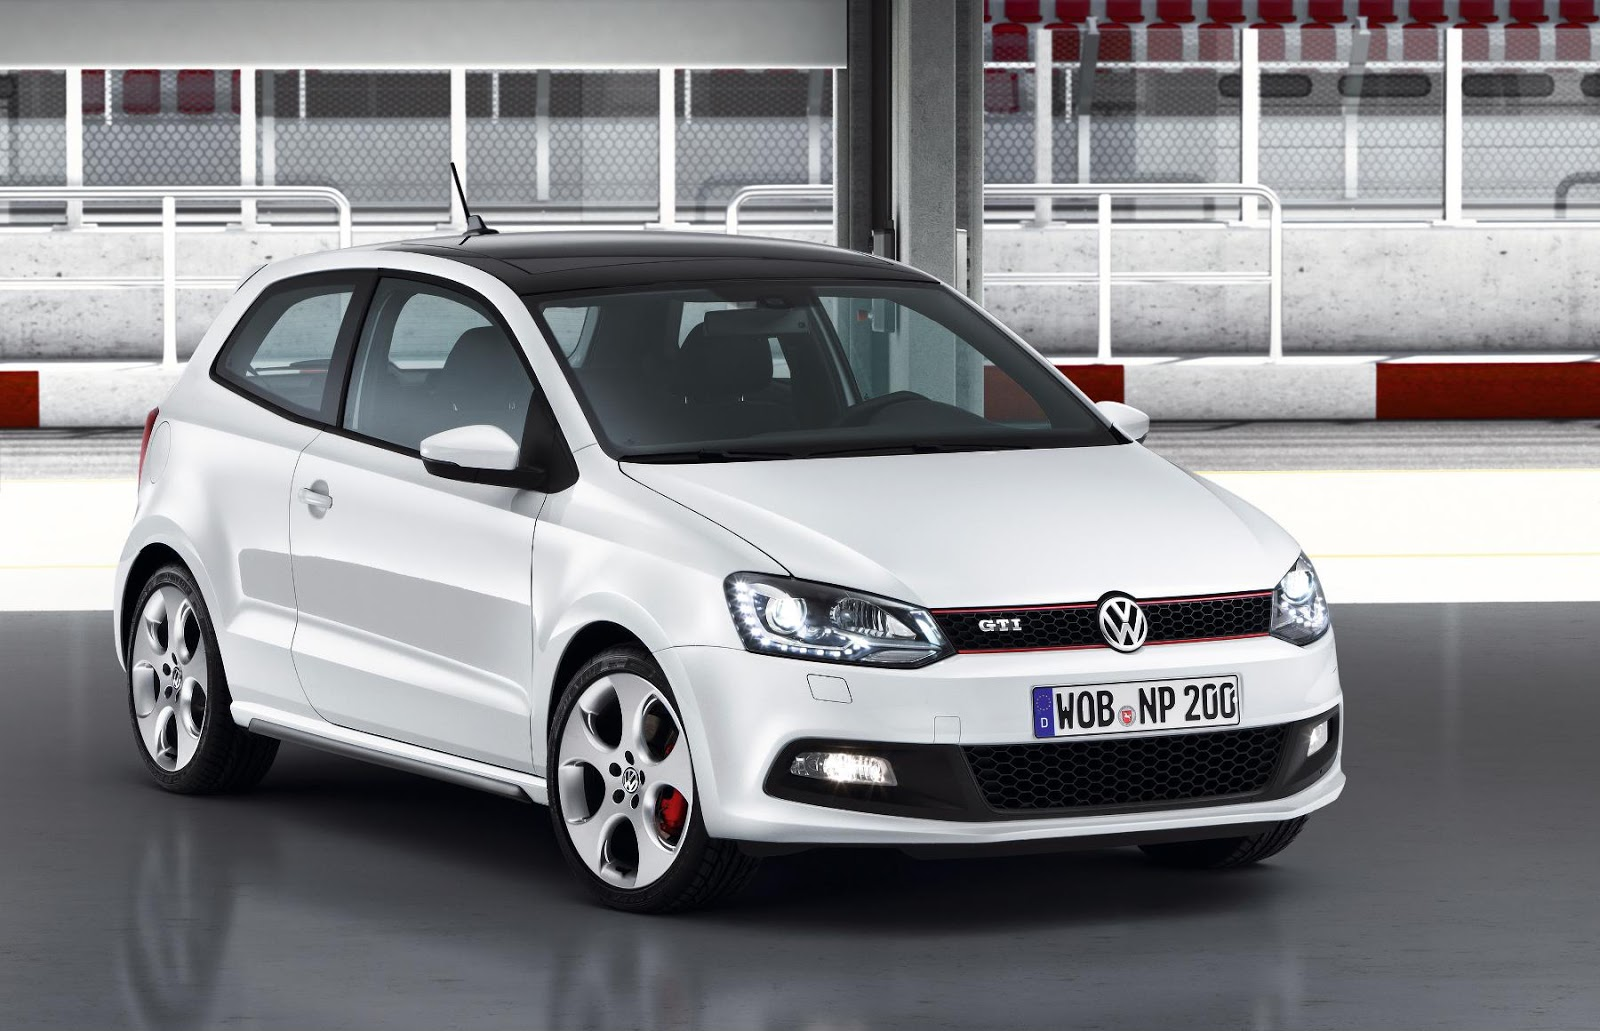 2013 Volkswagen Polo Gti 171 Cars